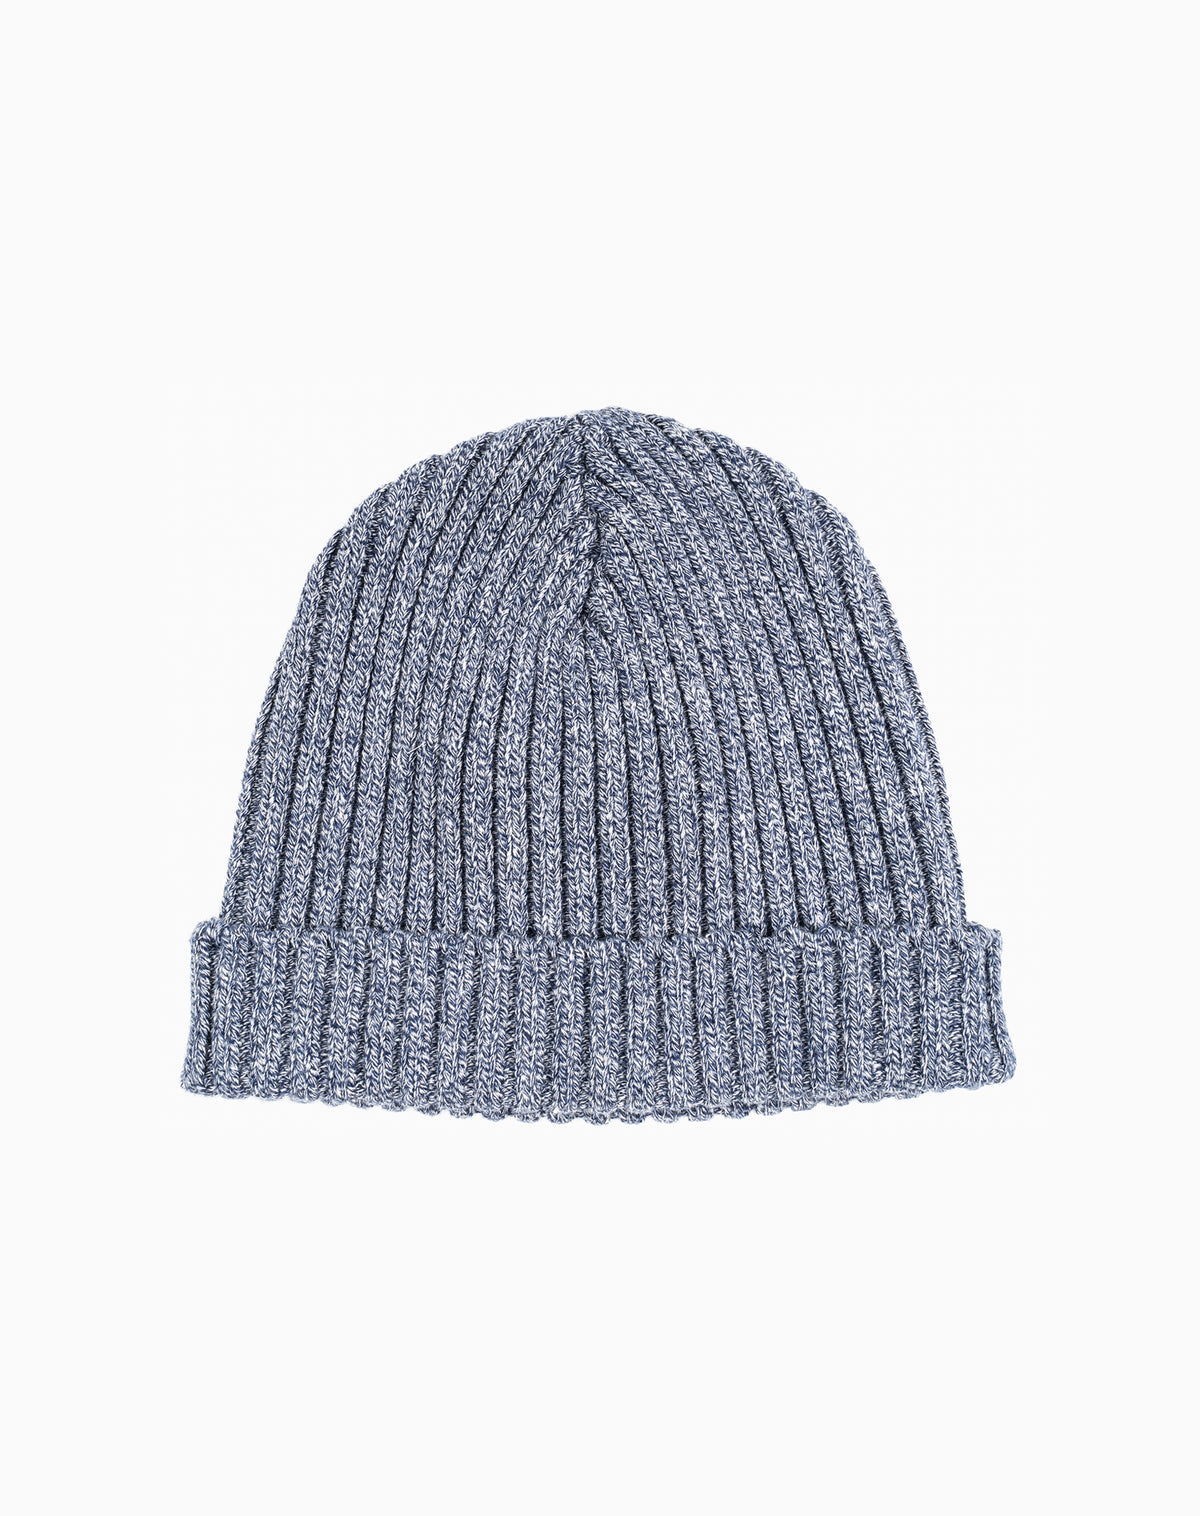 Docksider Knit Beanie in Heather Navy